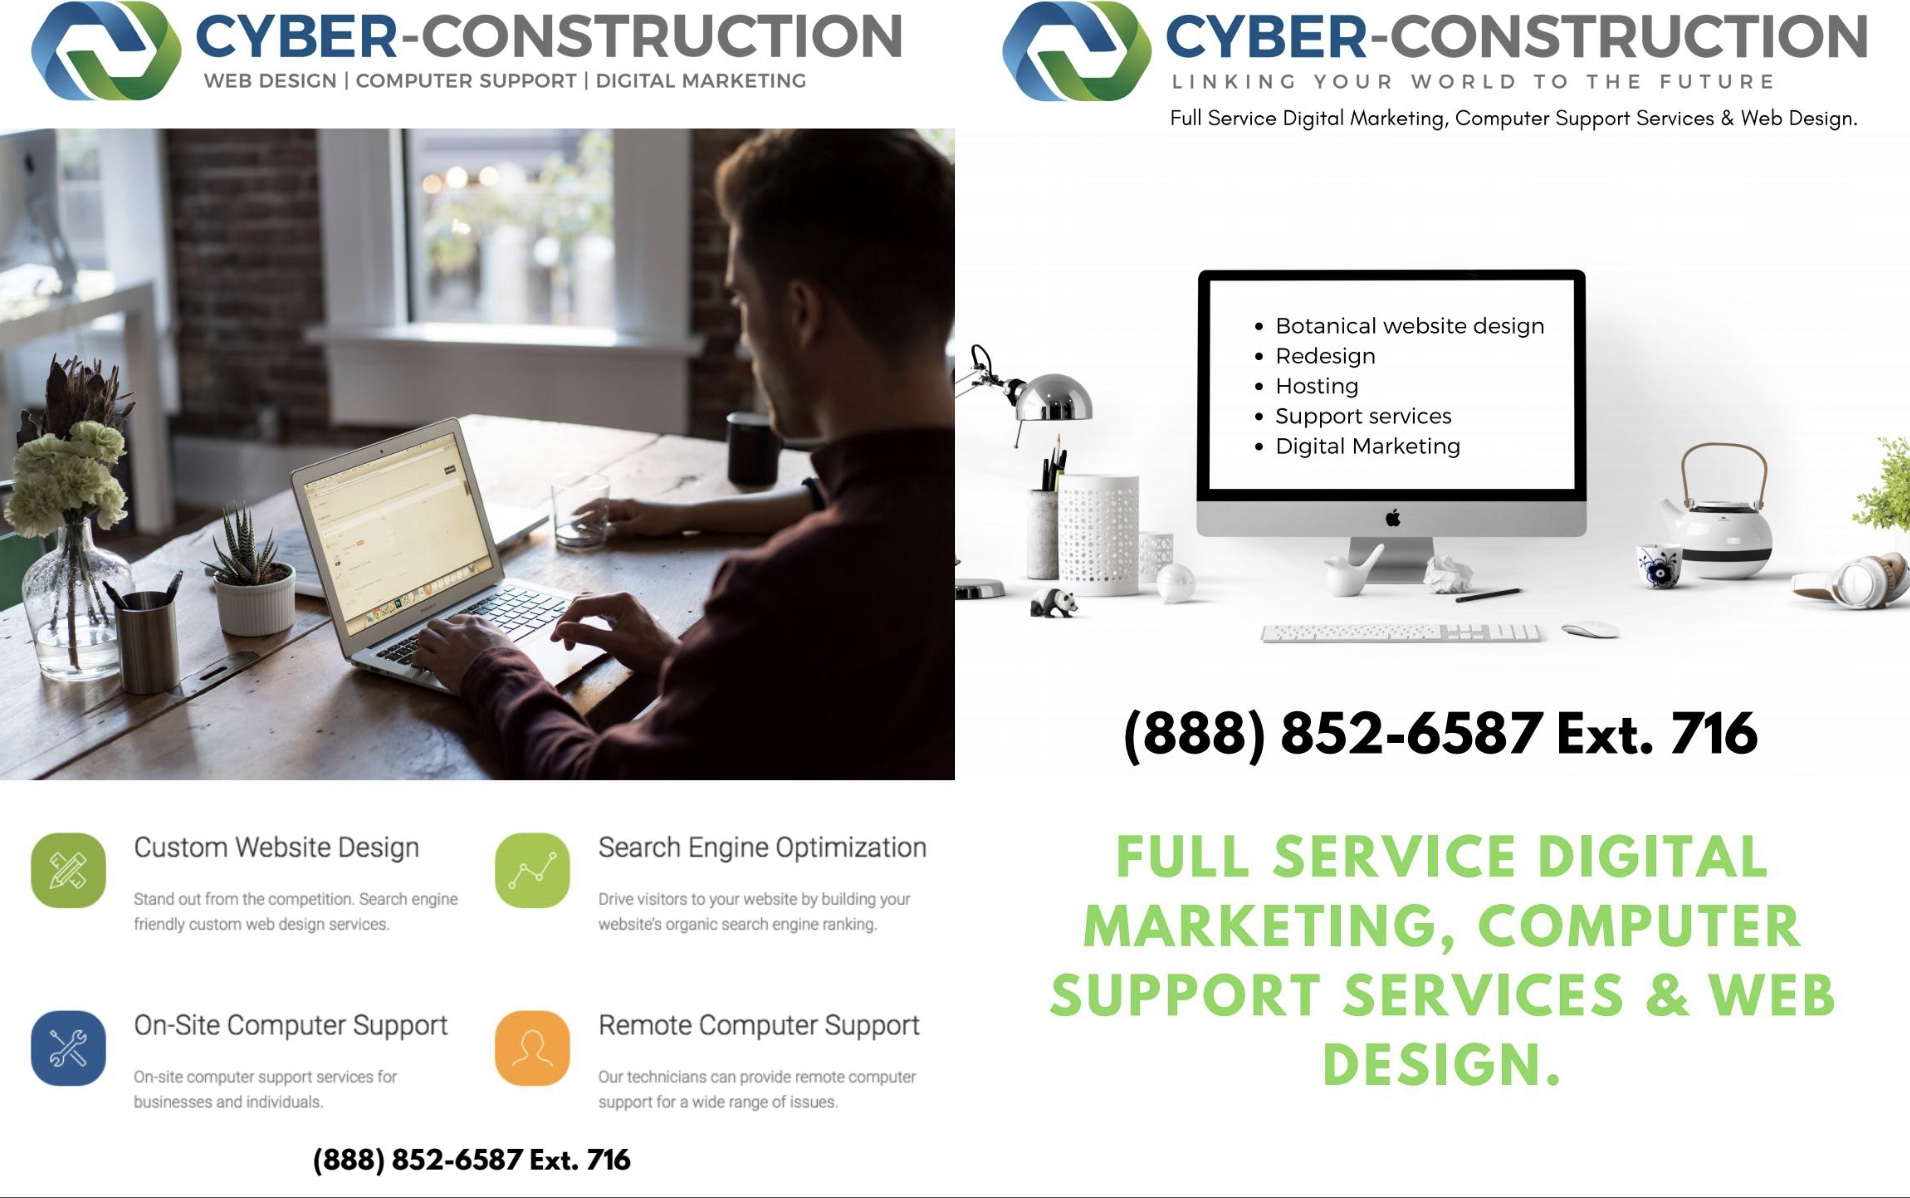 Client: Cyber Construction for Kratom Culture Magazine